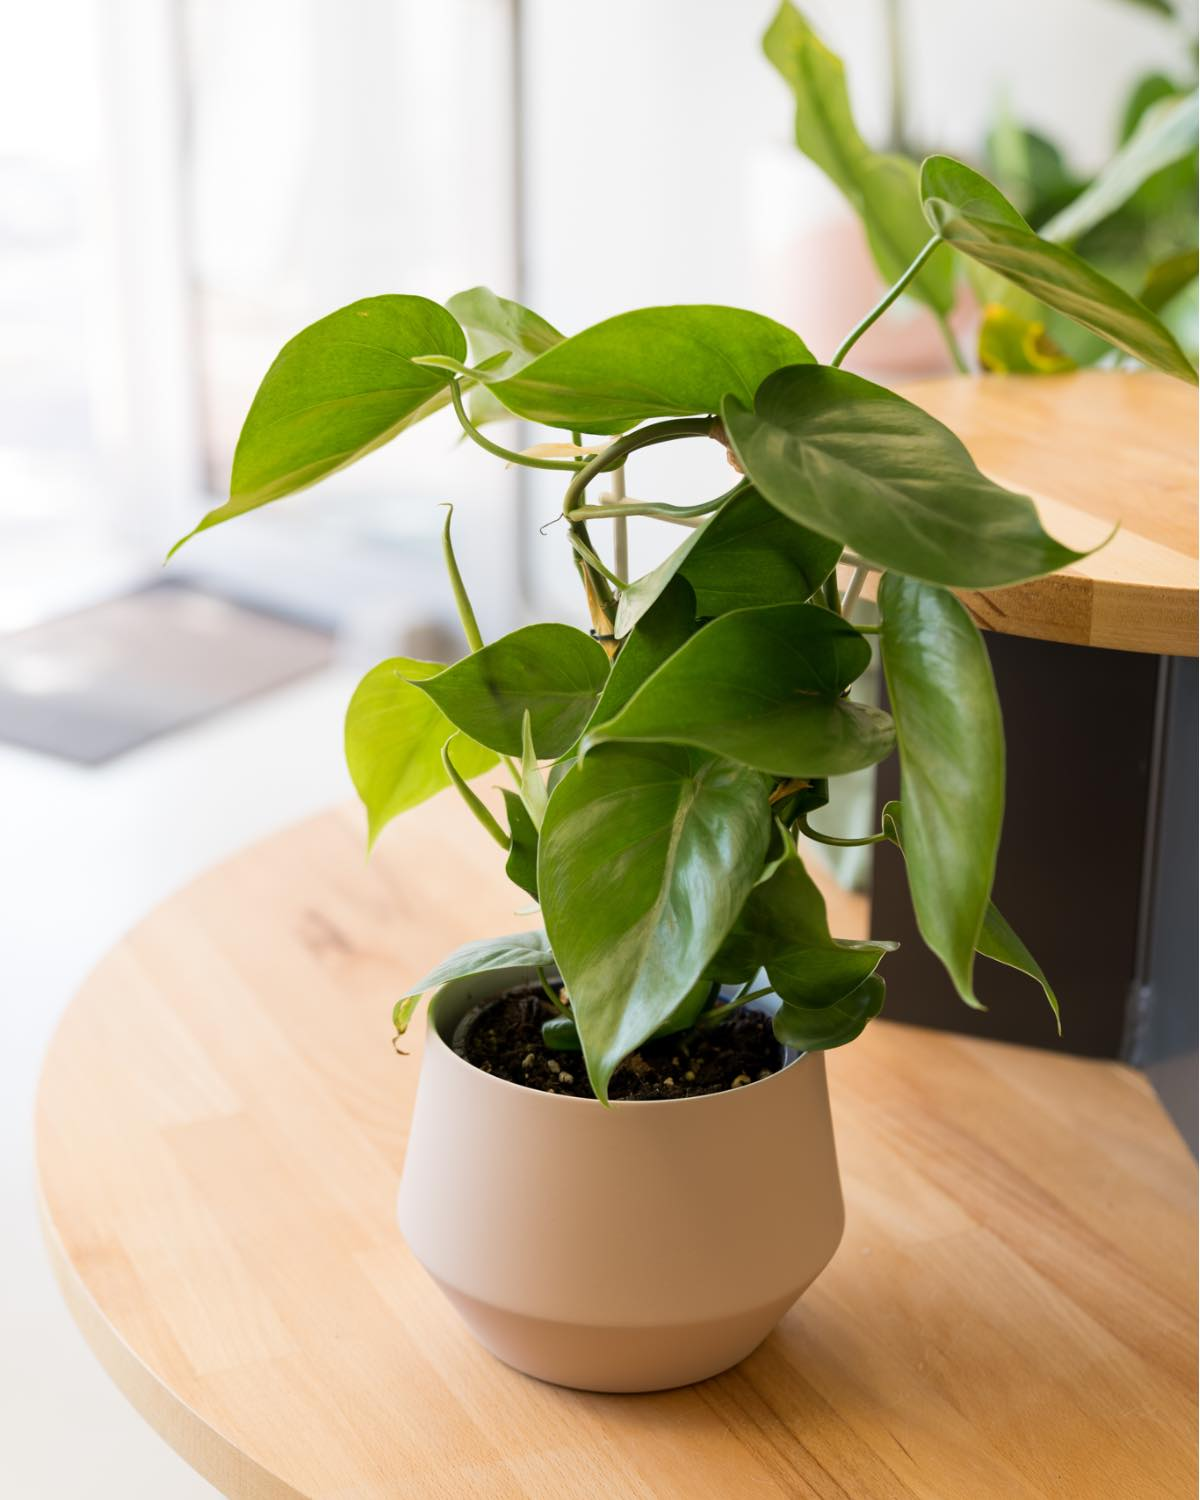 Heart Leaf Philodendron - Small